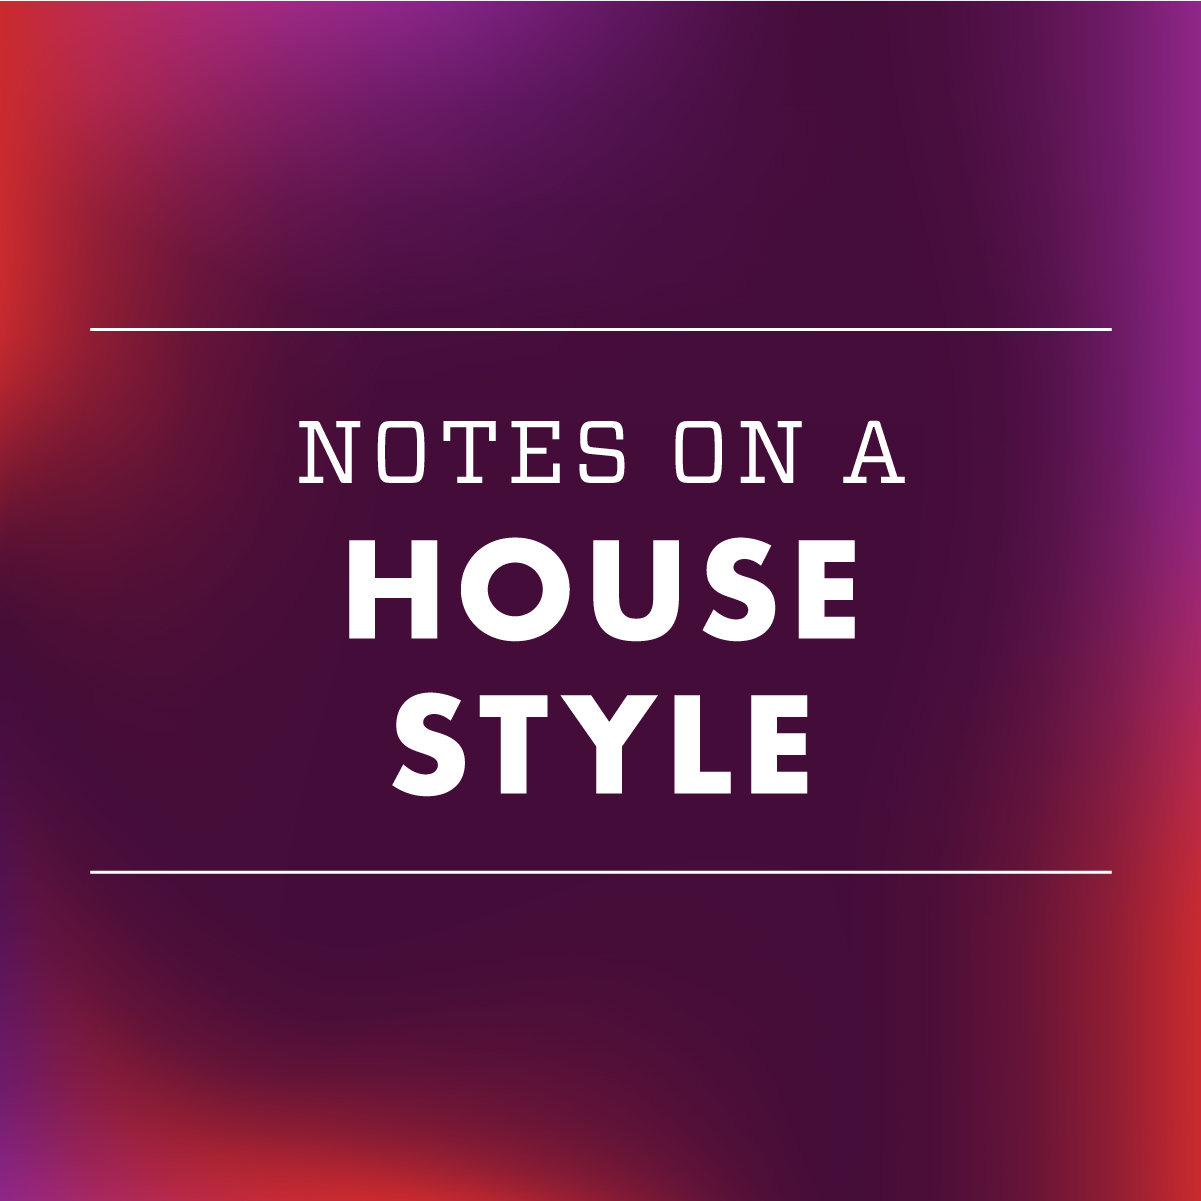 Notes on a house style text